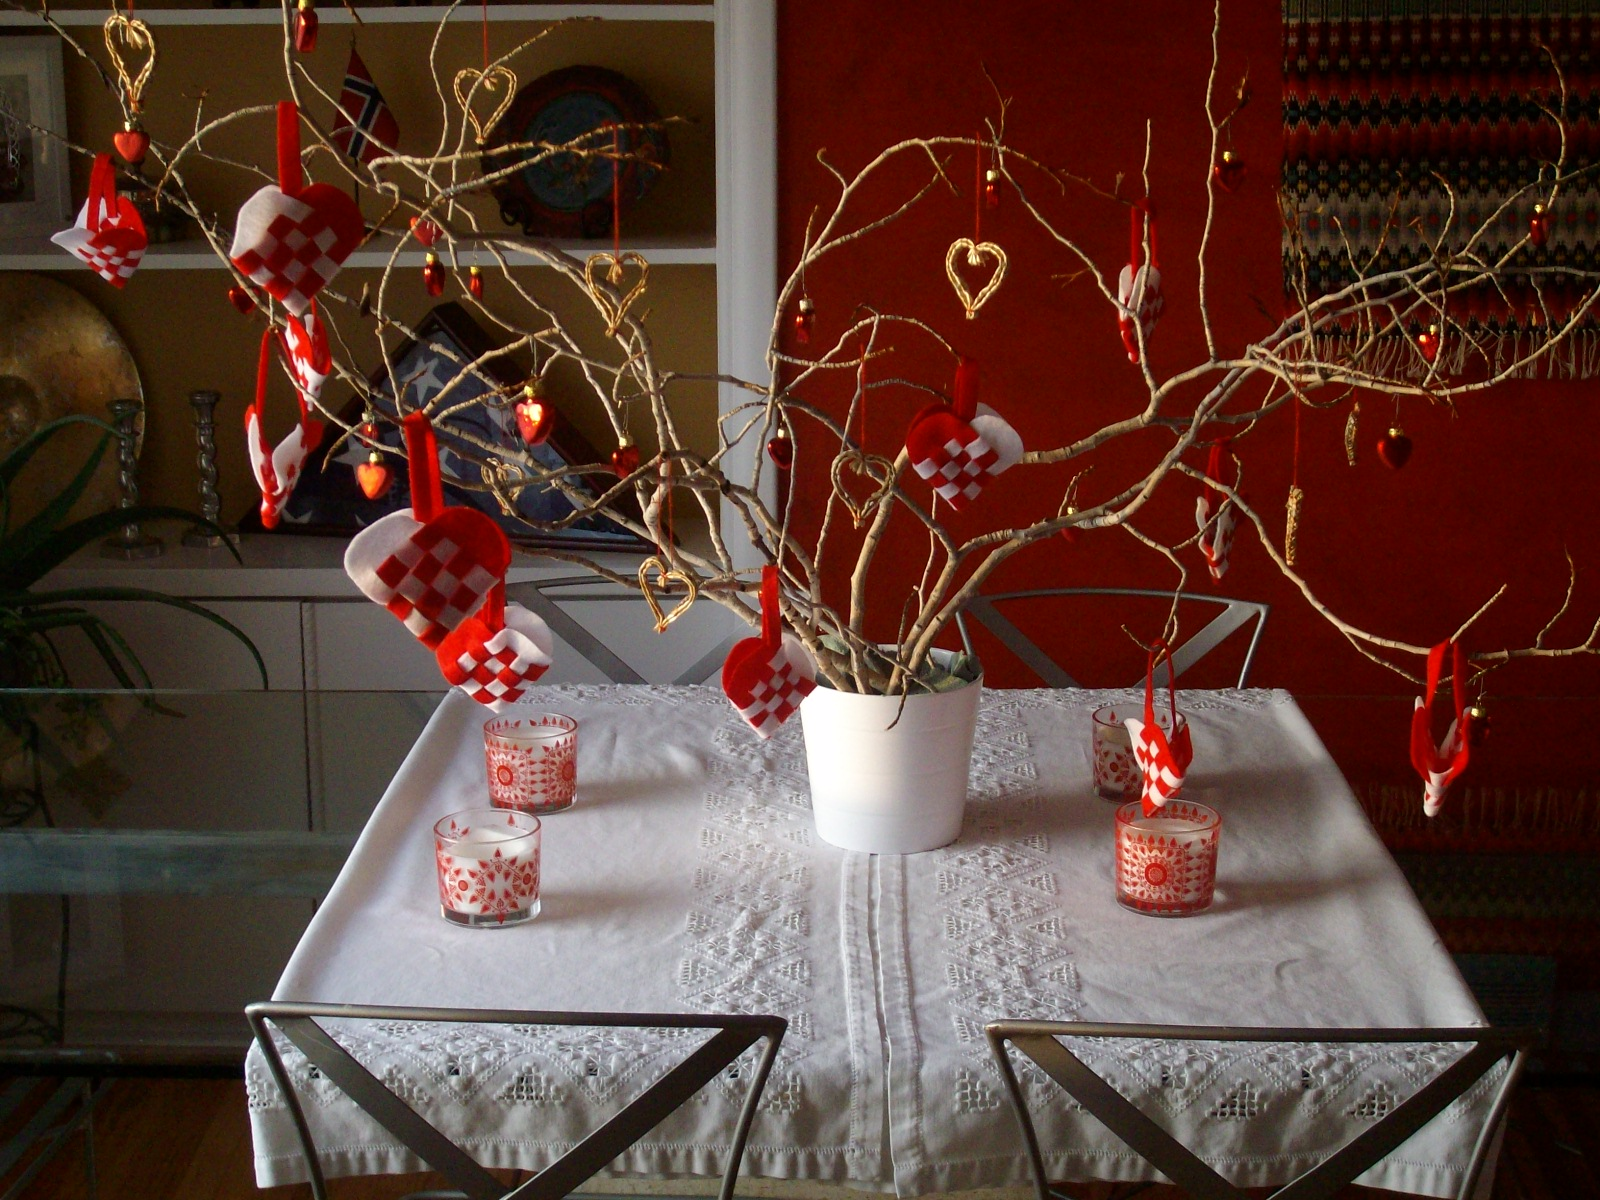 Valentine tree ornaments - In The Interim To Keep Them Company The Branches Have Been Turned Into A Valentine Advent Tree Joyfully All Heart Shaped Ornaments From This Last